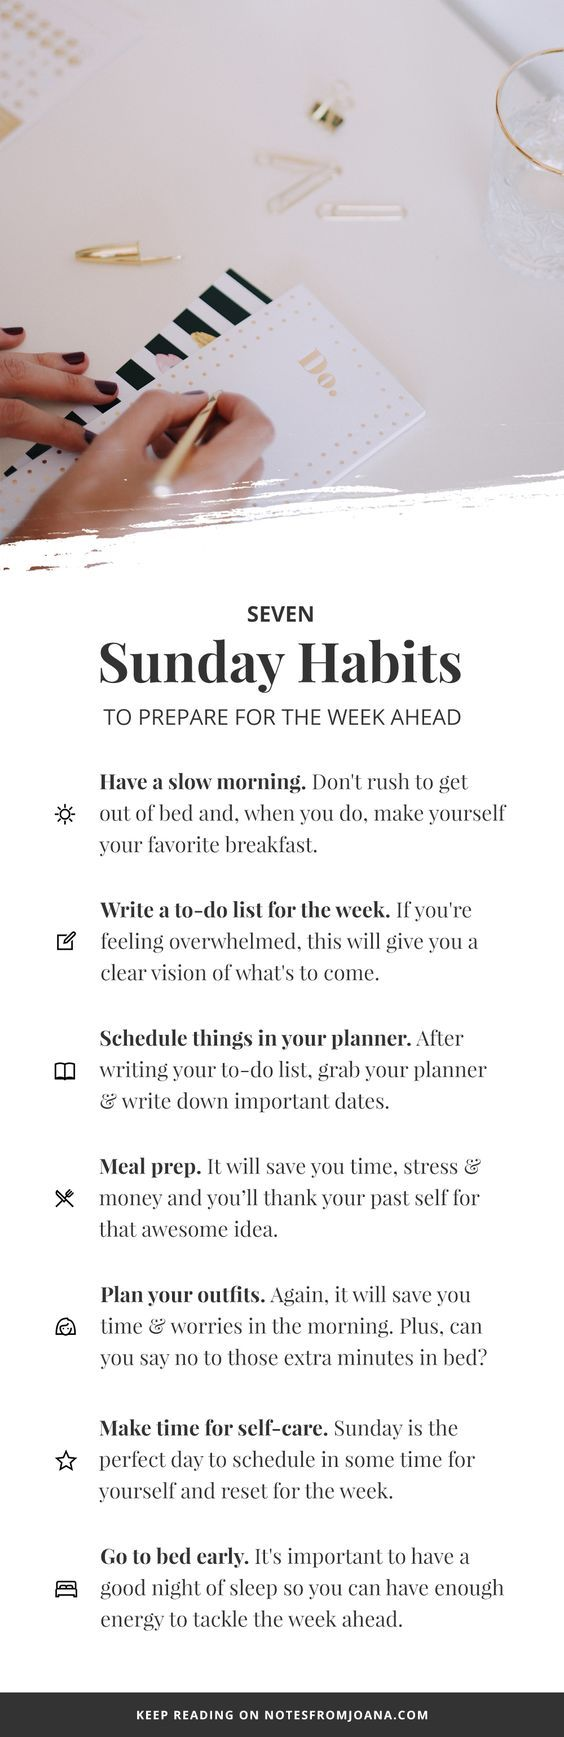 7 Sunday Habits To Prepare You For The Week Ahead // Notes from Joana